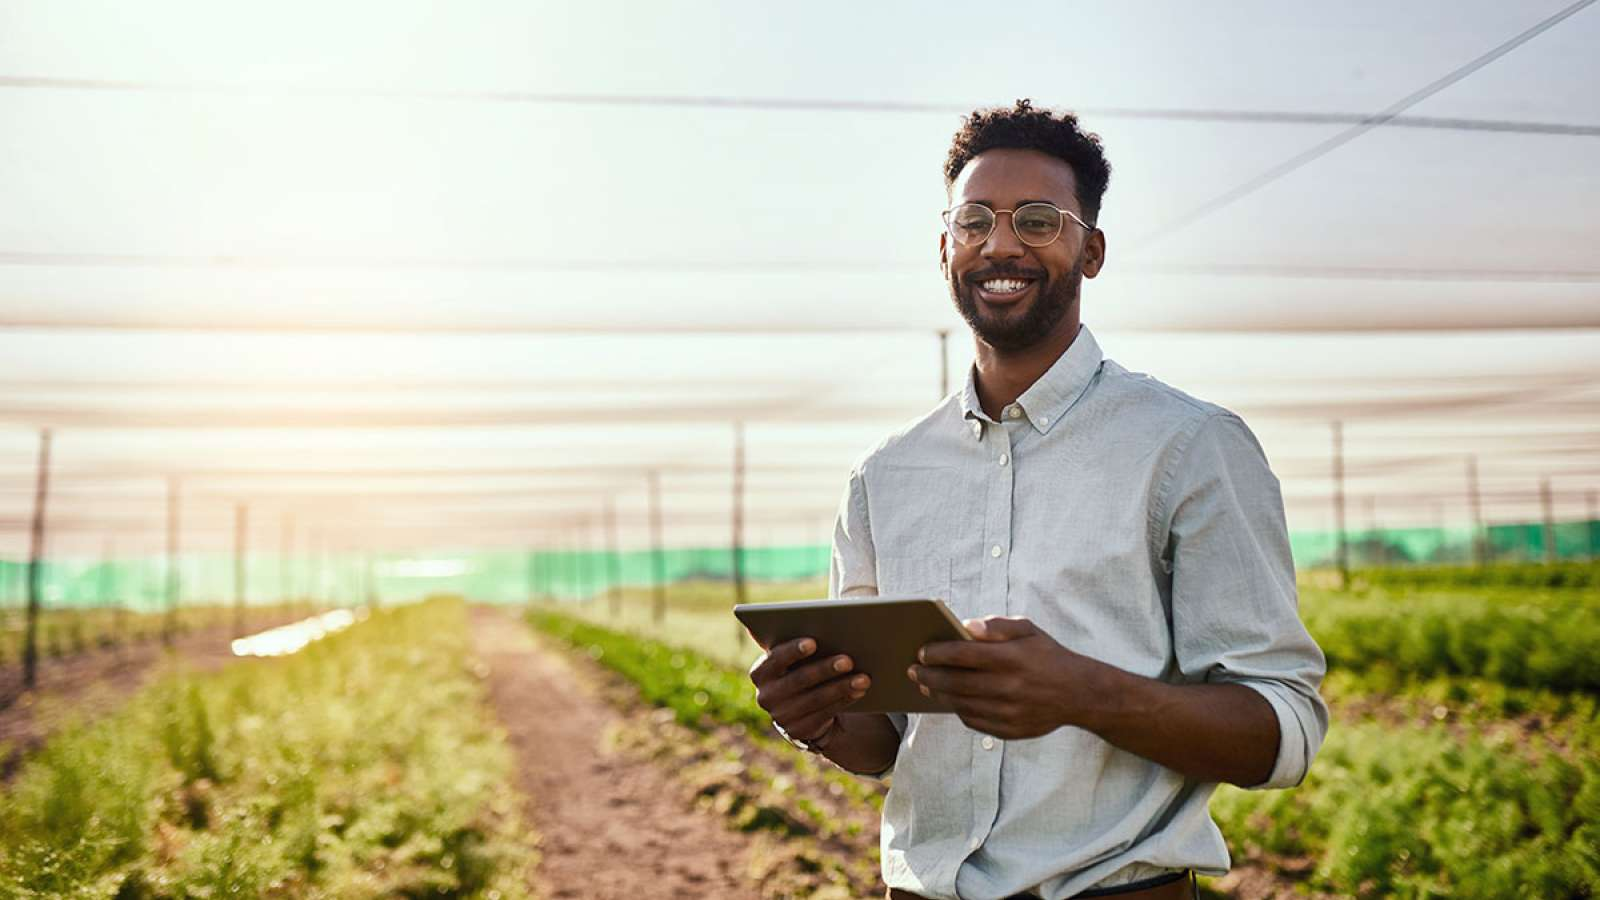 Man with glasses holding tablet in a field of plants